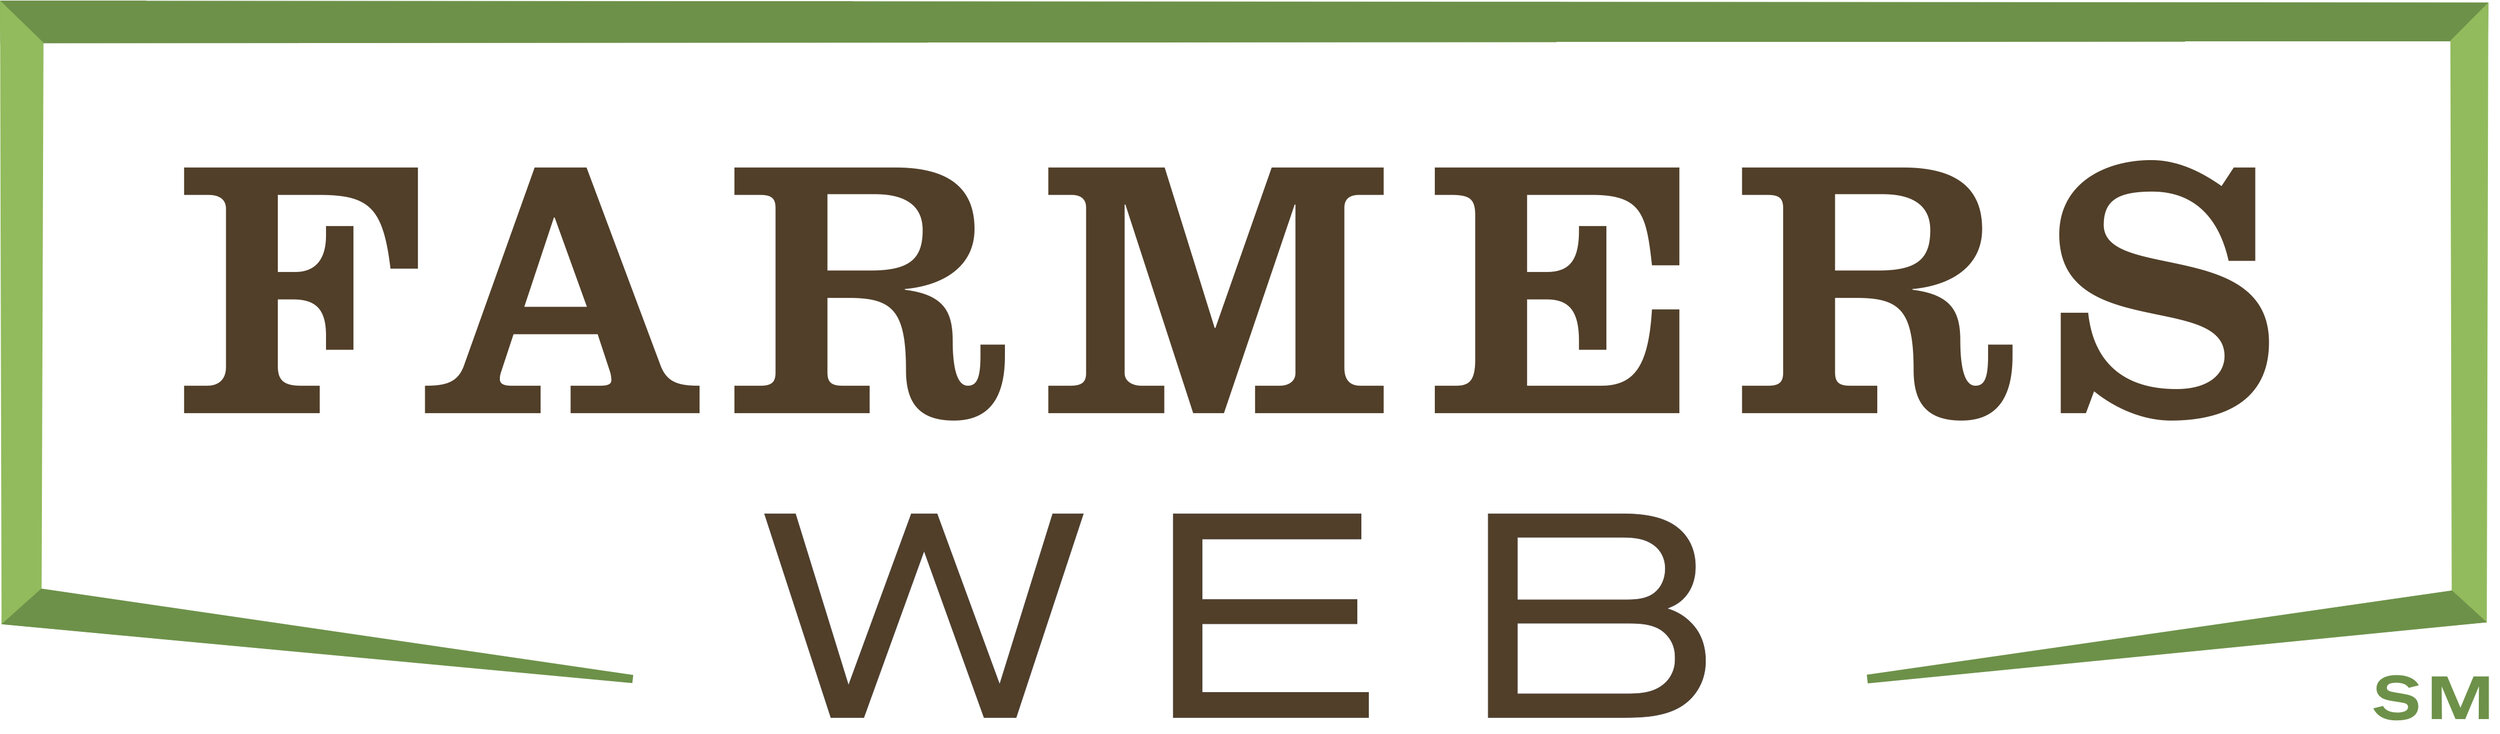 FarmersWeb_Logo_White_Brown.jpg